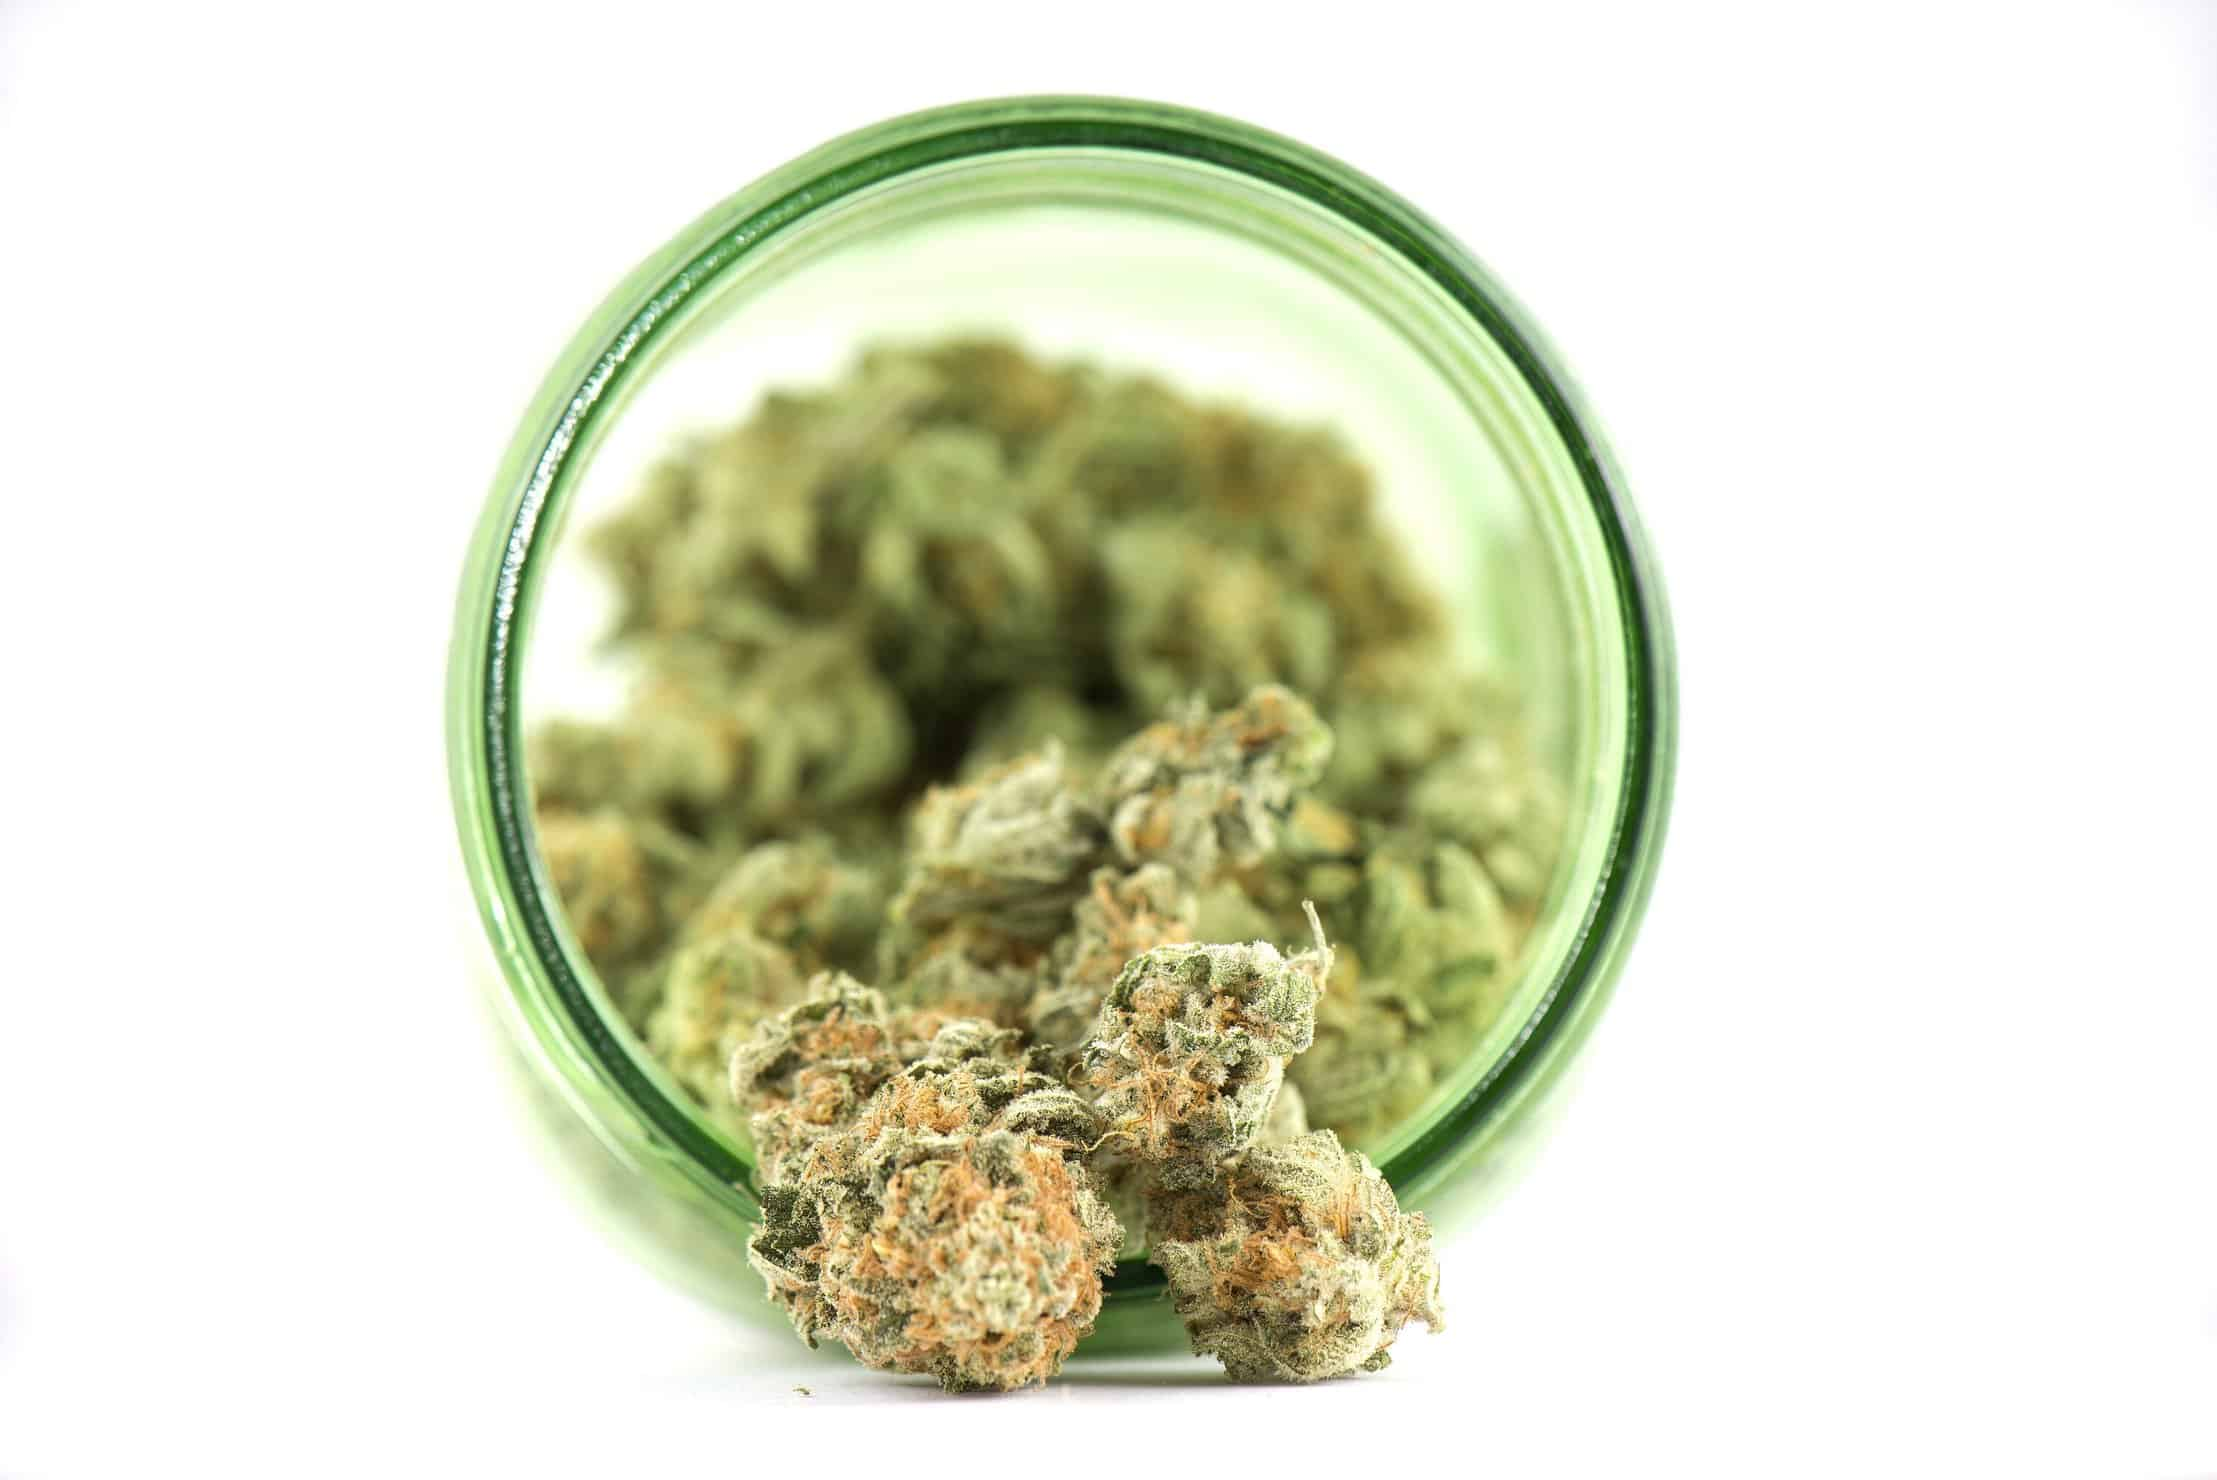 Cannabis sales in Michigan. Recreational cannabis Michigan. Recreational marijuana Illinois.